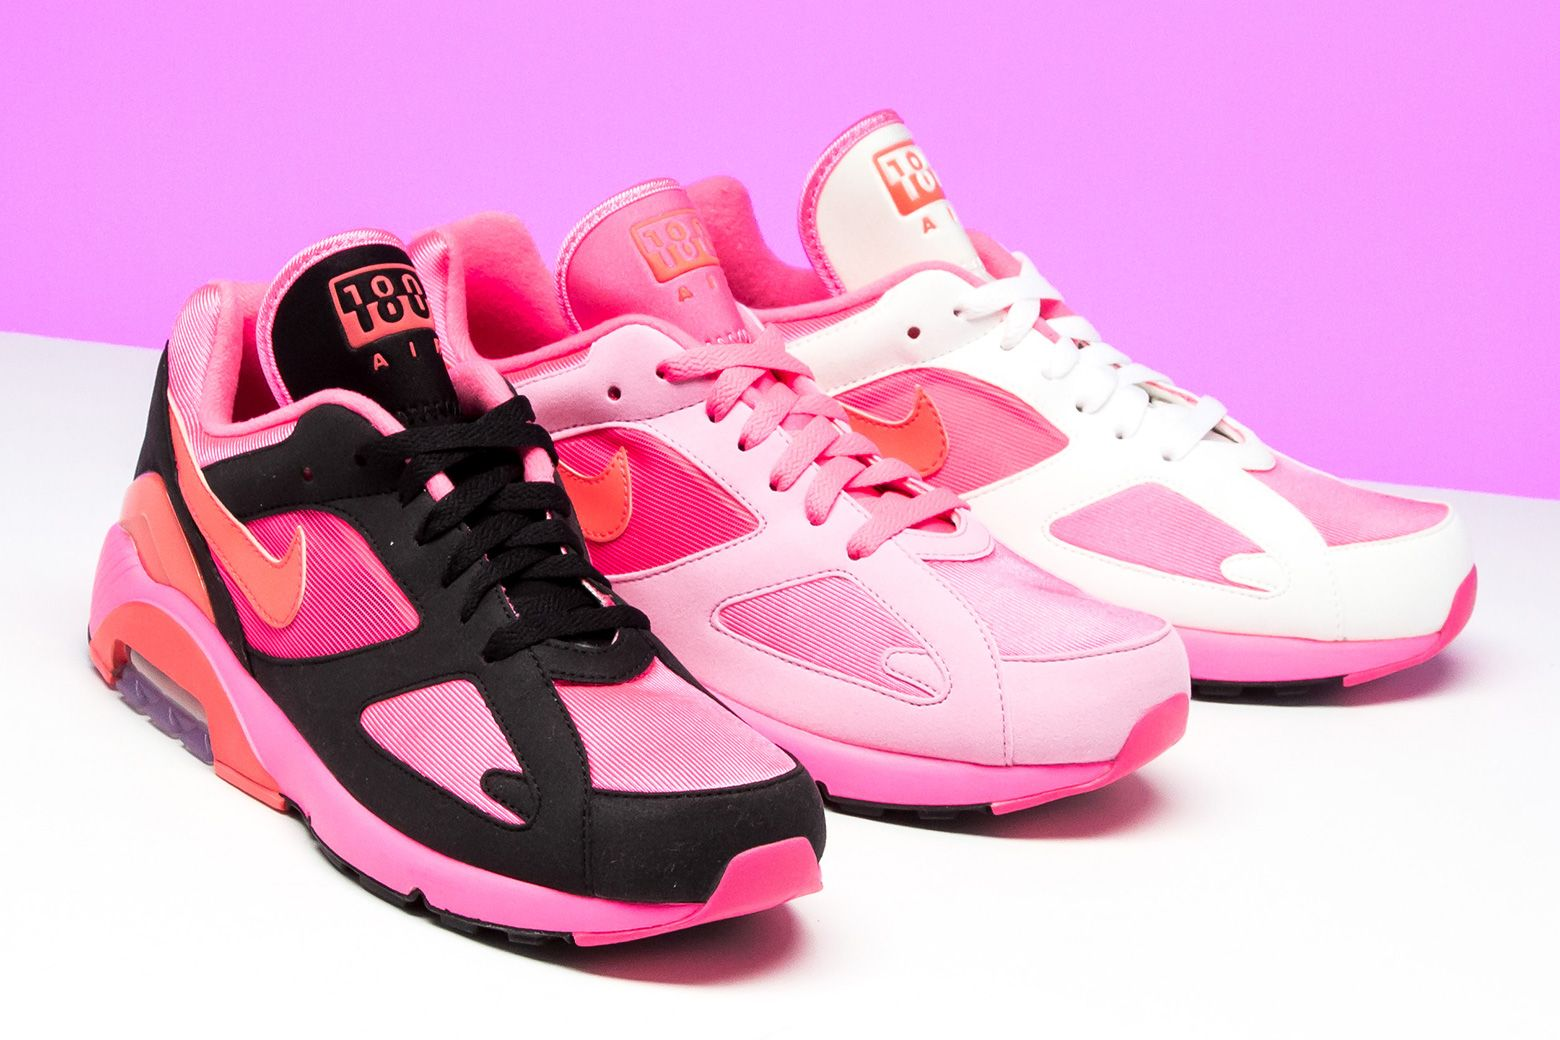 dfe1832c000a6f COMME des GARÇONS  Nike Air Max 180 gets a trio of vibrant Laser Pink  options